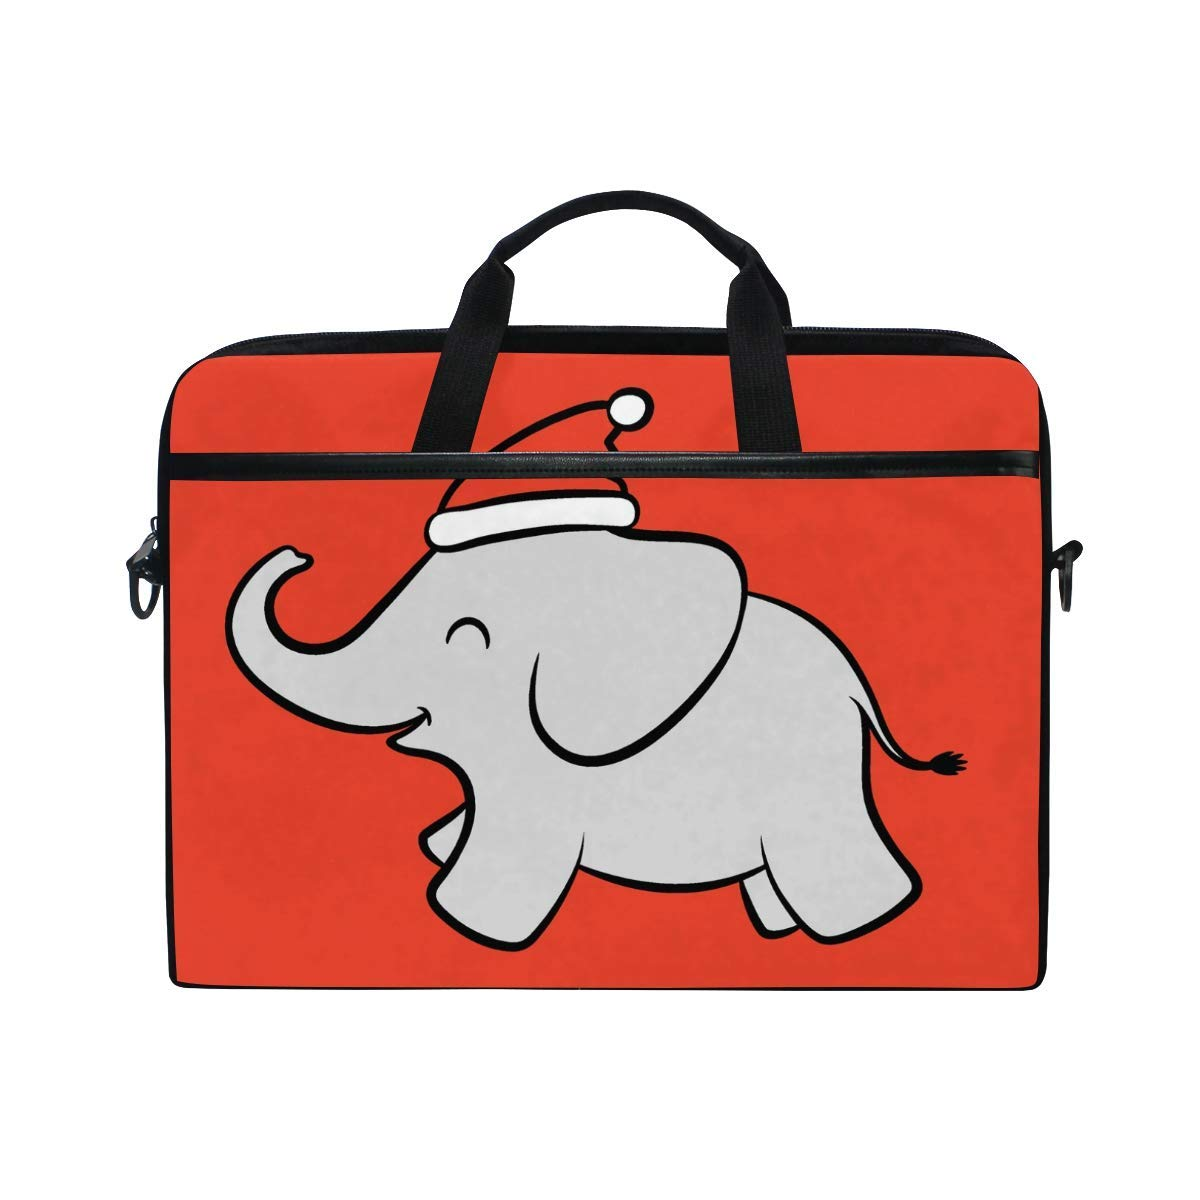 Cute Elephants Suitcase 20 Carry On Personalized